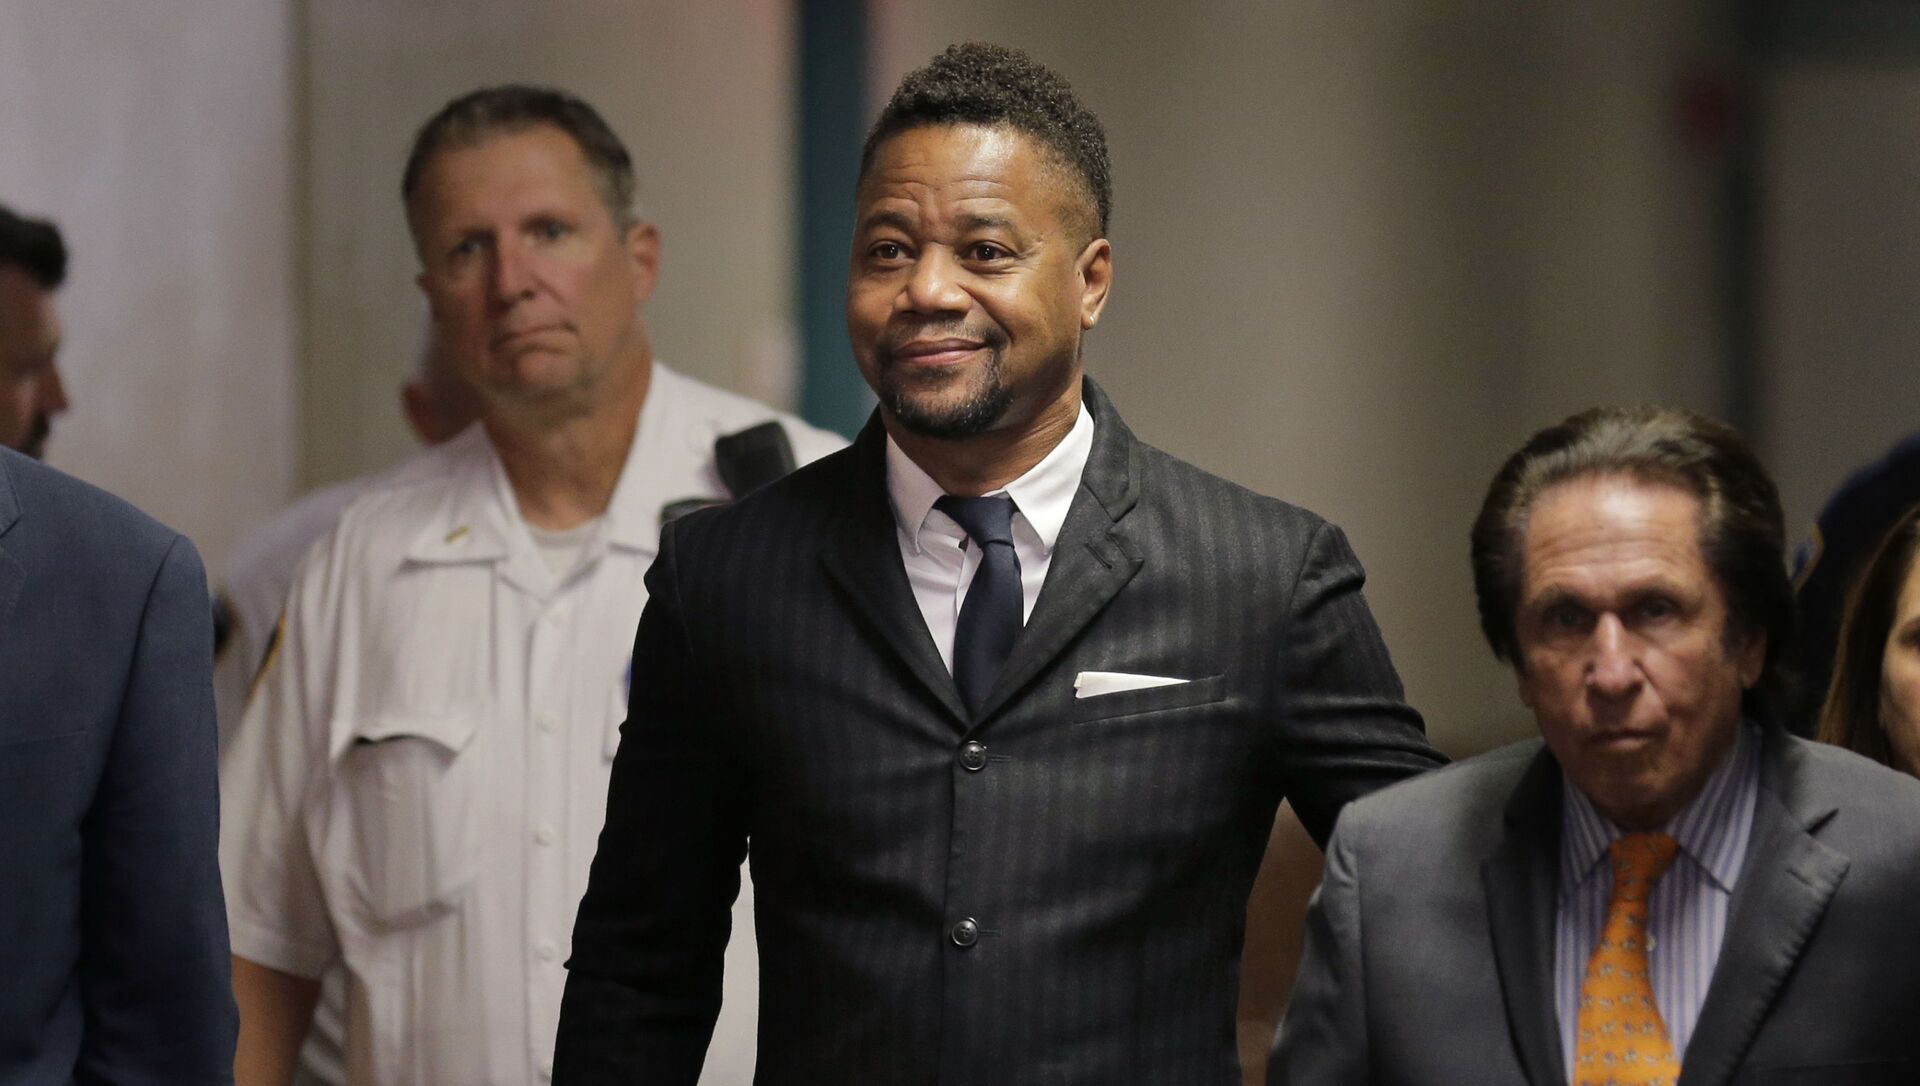 Cuba Gooding Jr. arrives to a courtroom in New York, Thursday, Oct. 10, 2019.   The actor is accused of placing his hand on a 29-year-old woman's breast and squeezing it without her consent in New York on June 9.  - Sputnik International, 1920, 31.07.2021